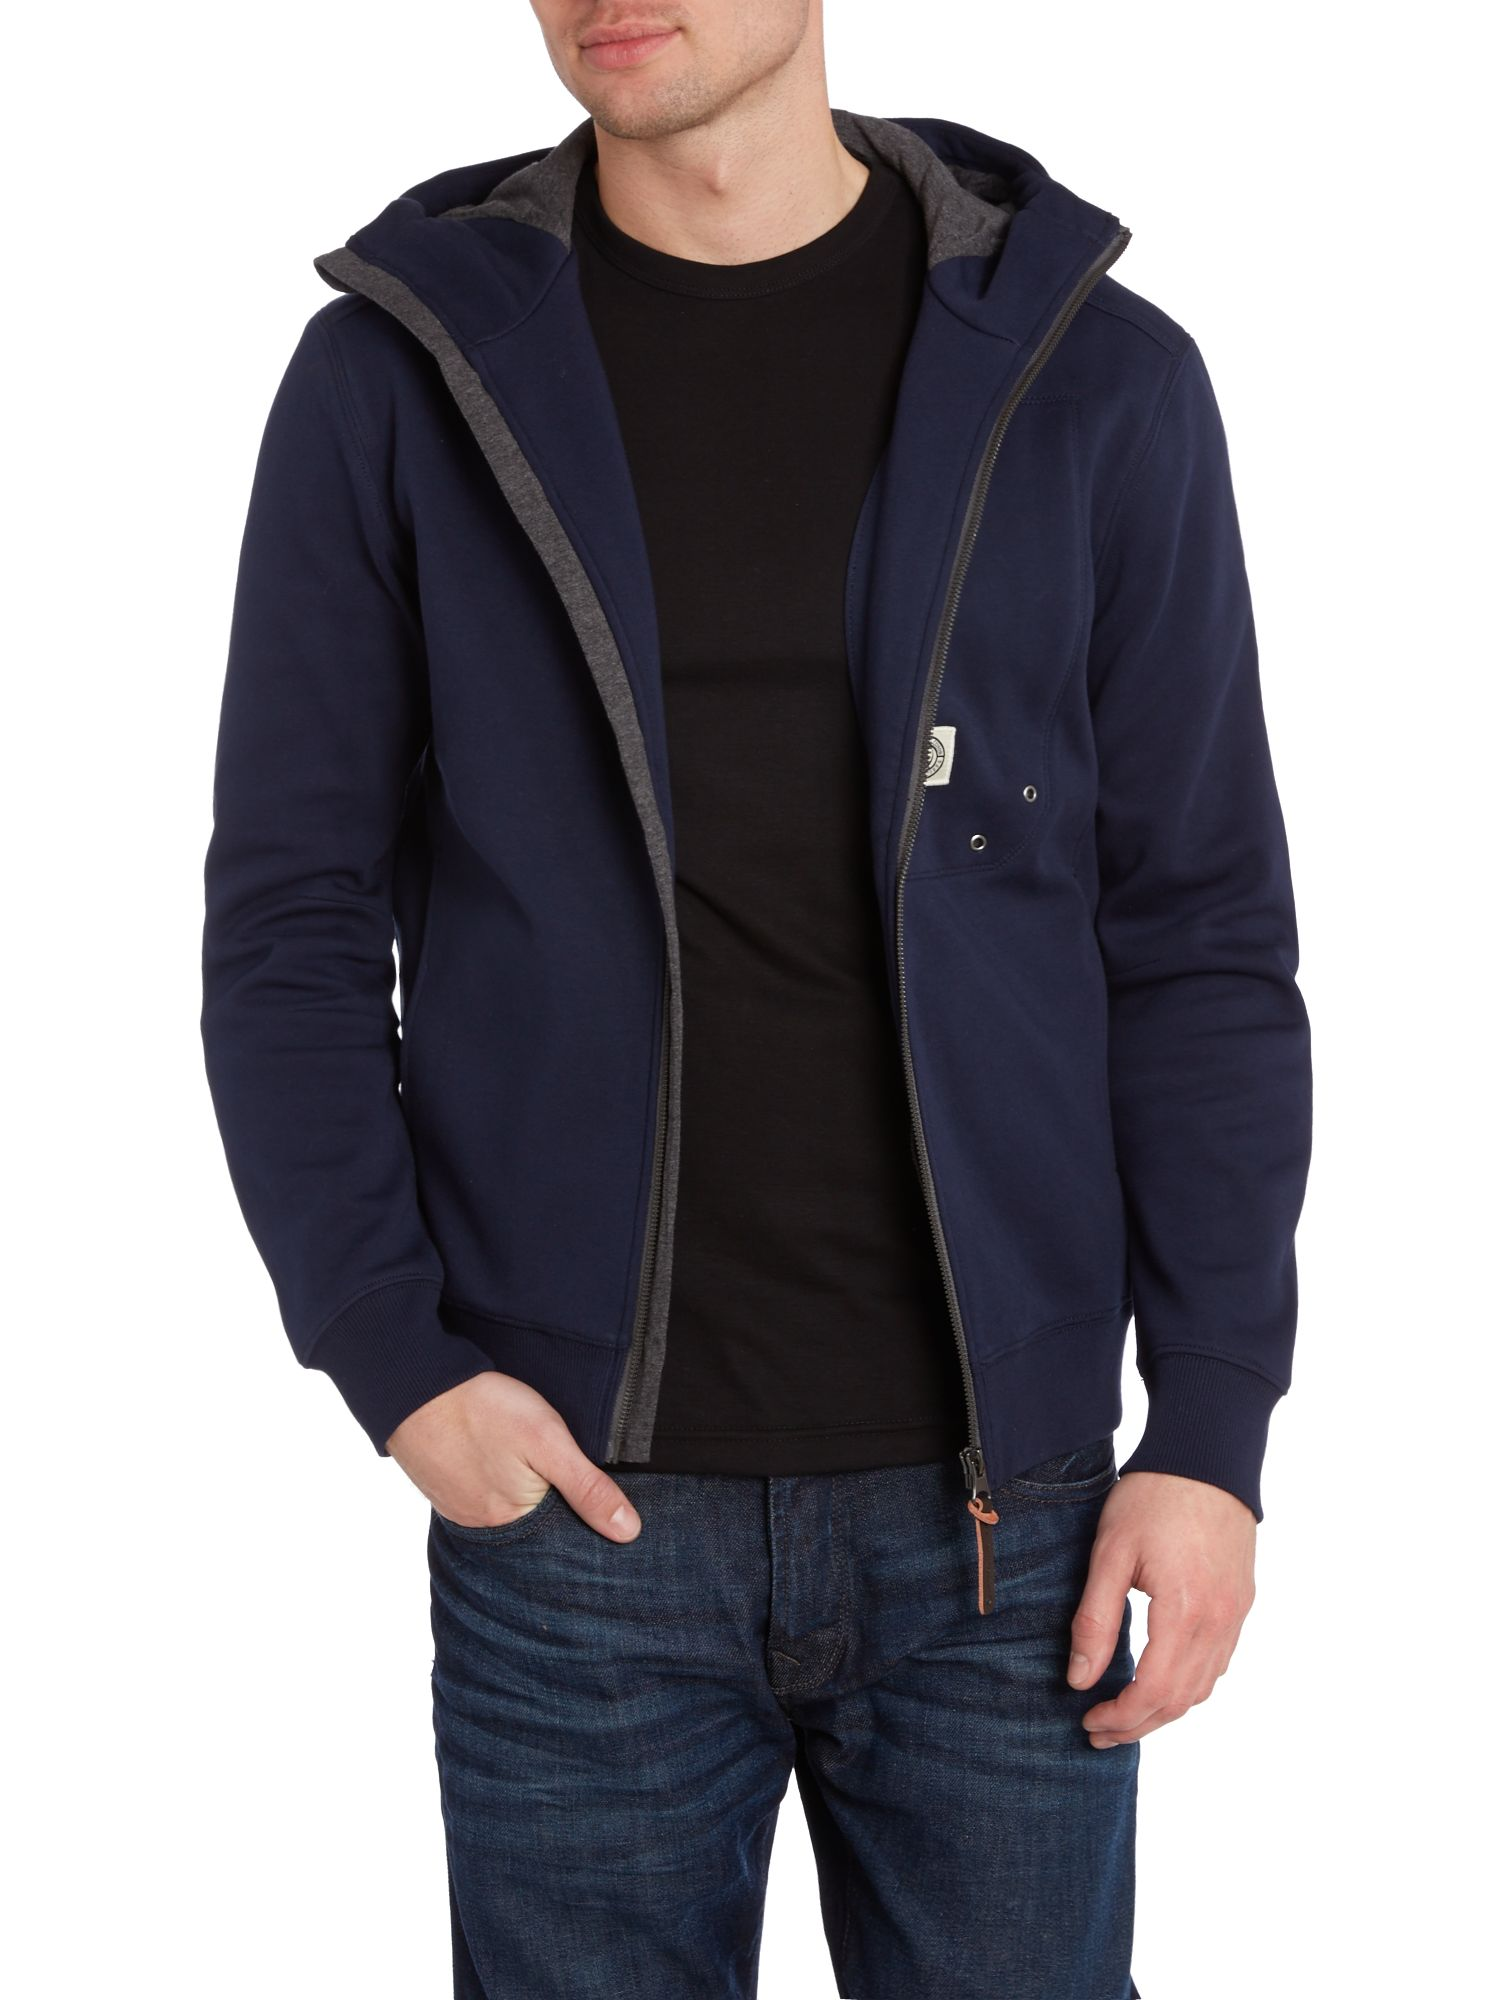 Hutton-v2 fleece zip up hoody cardigan